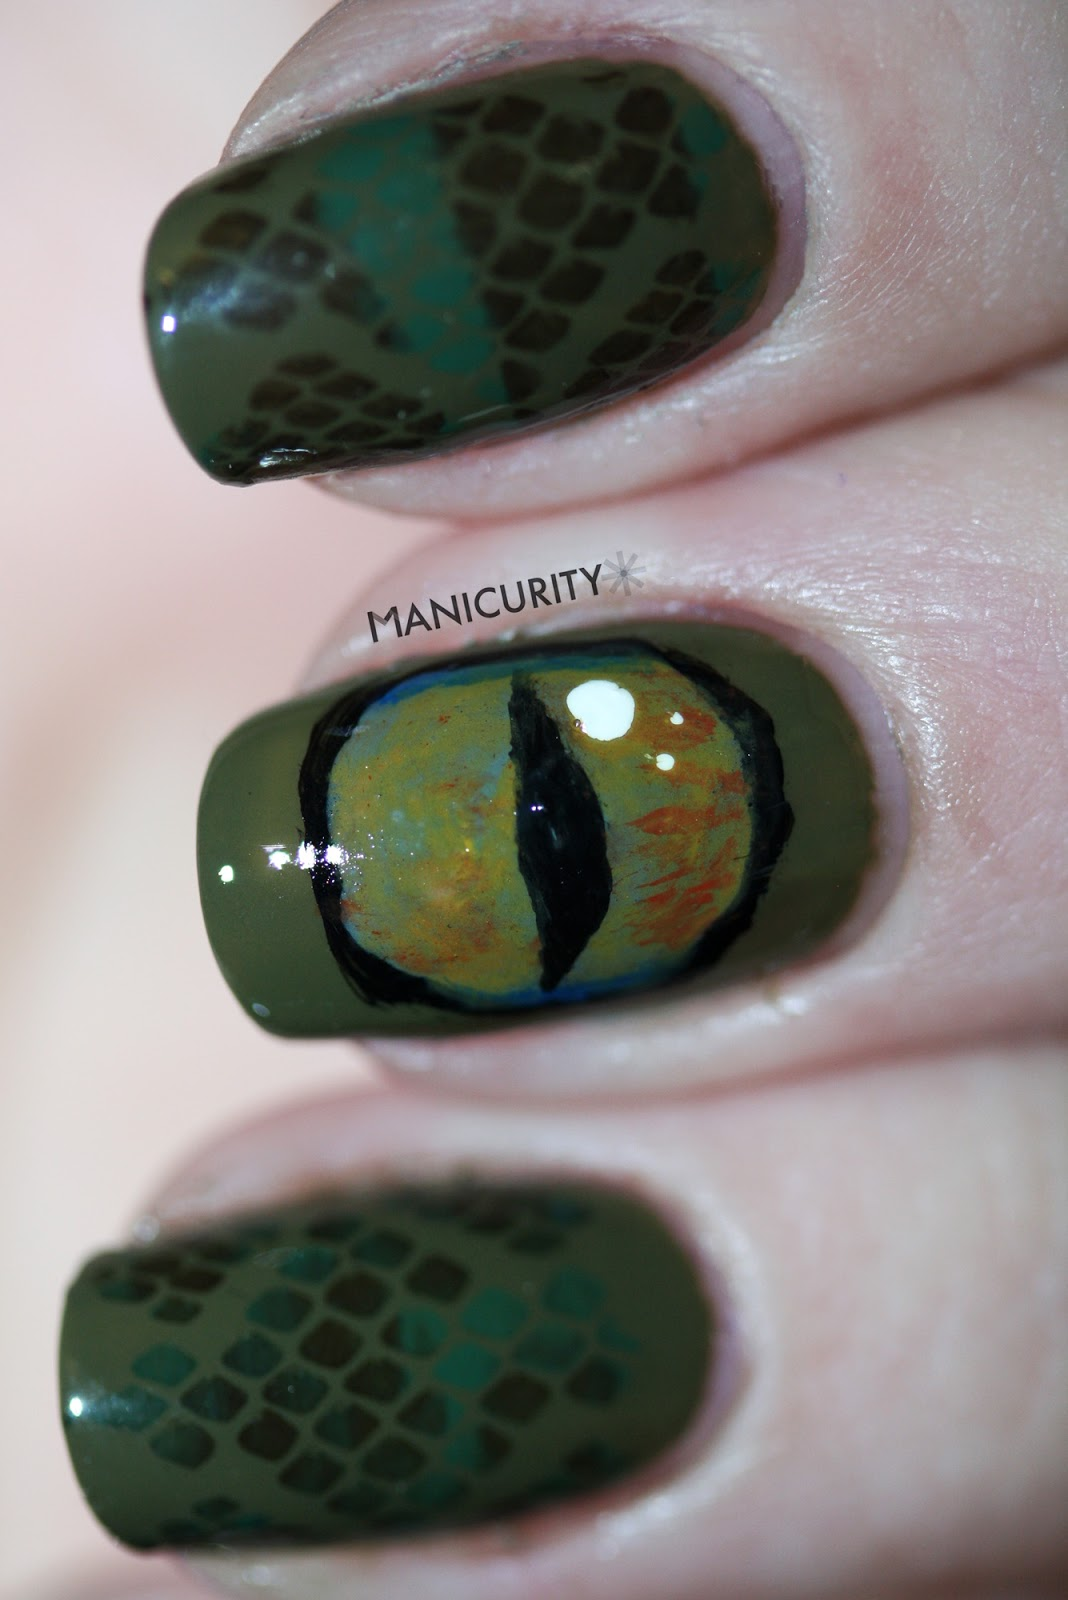 Manicurity: January 2013